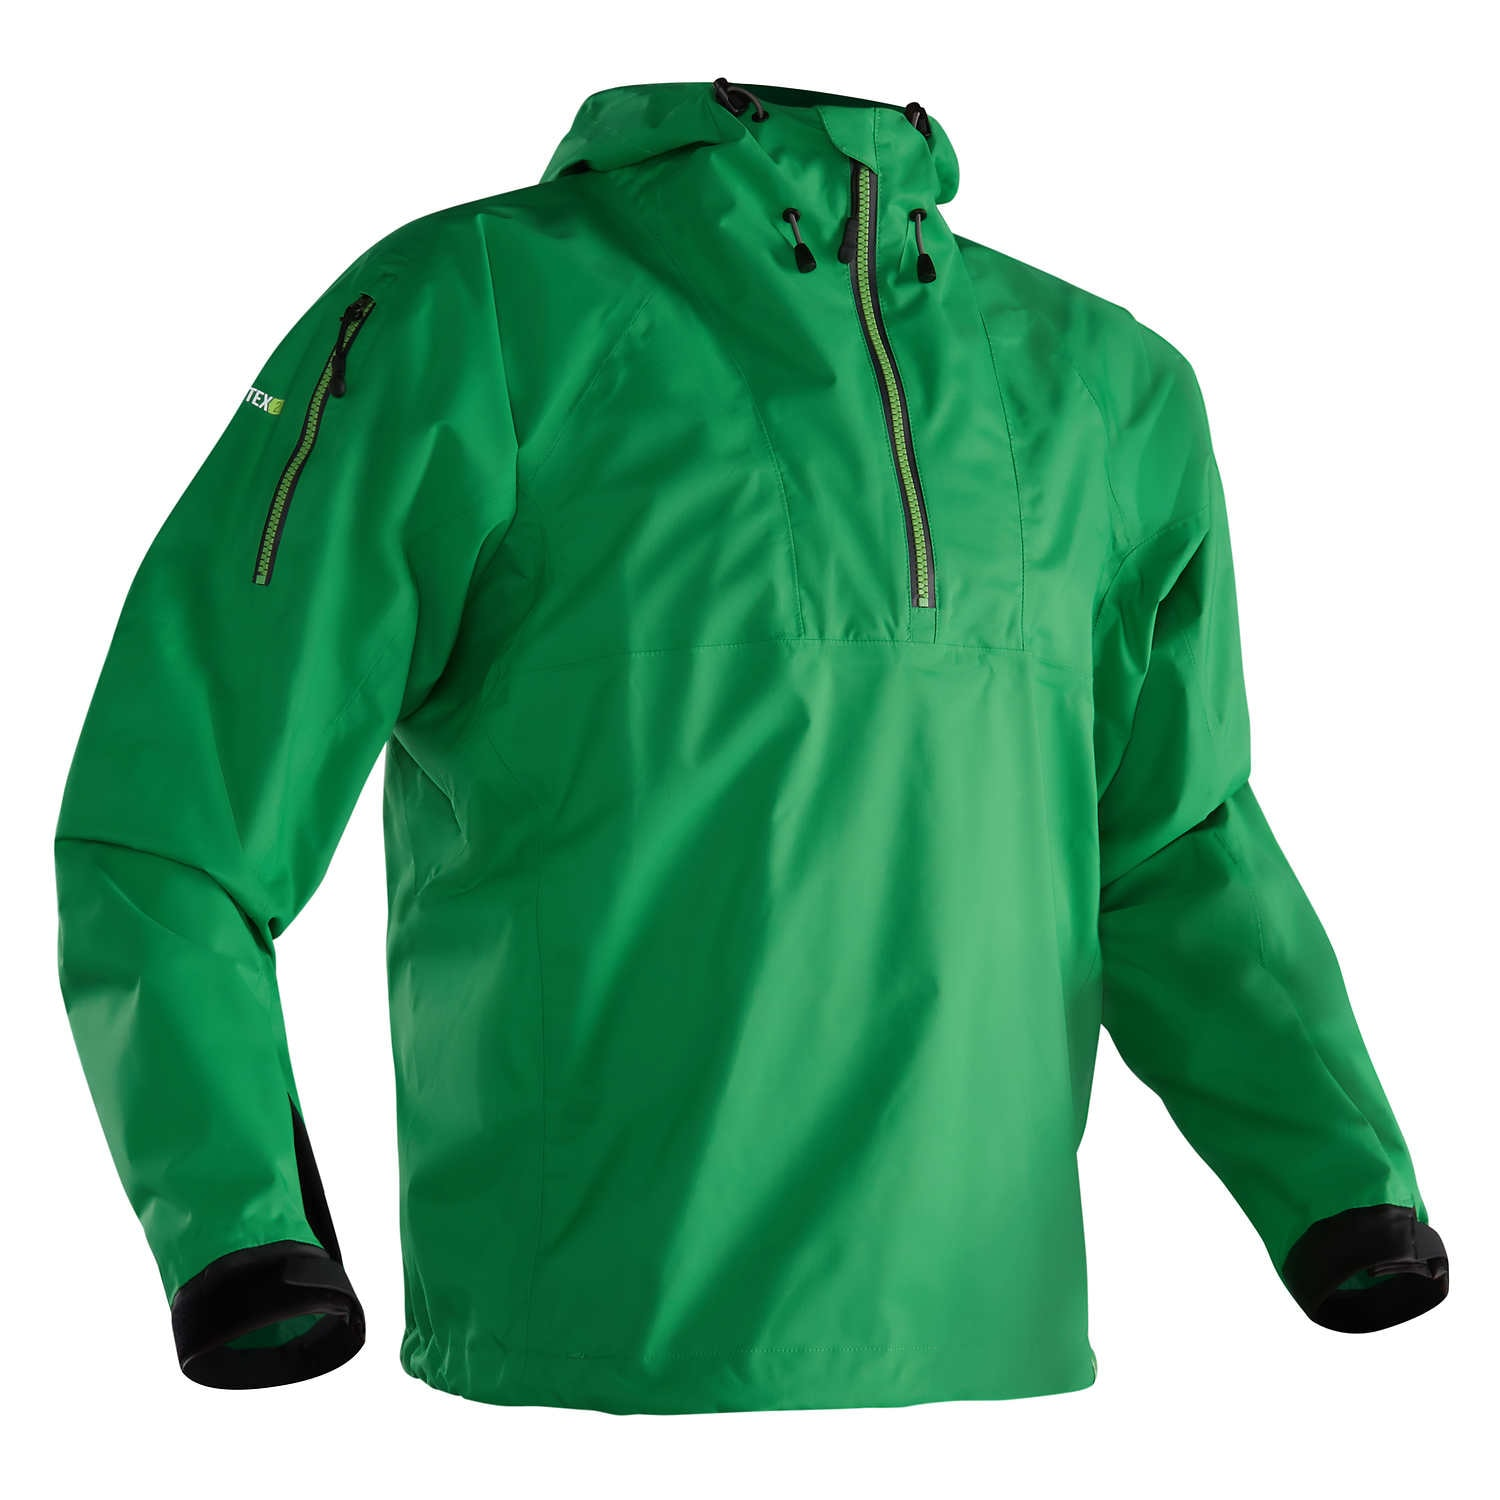 NRS High Tide Jacket, Padlejakke